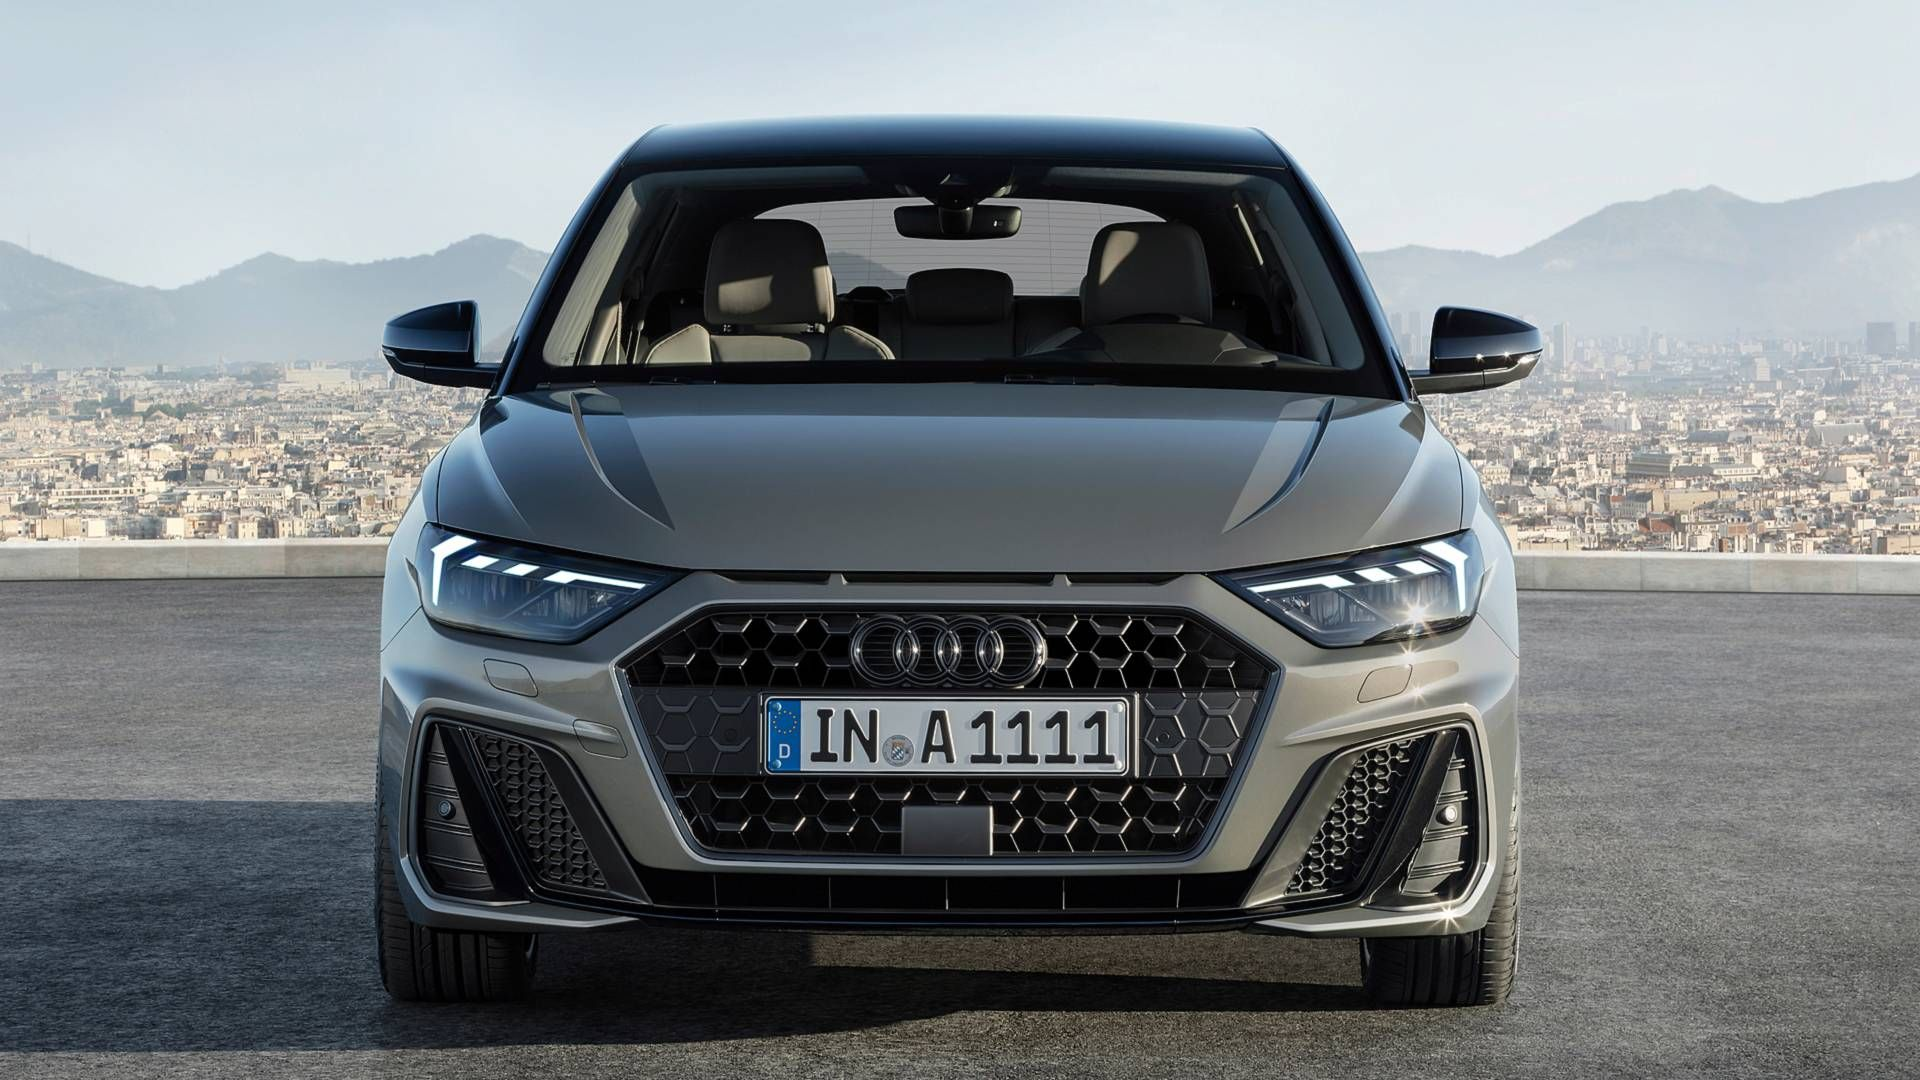 Spied Audi A1 Caught Testing At The Nurburgring Audi A1 Audi